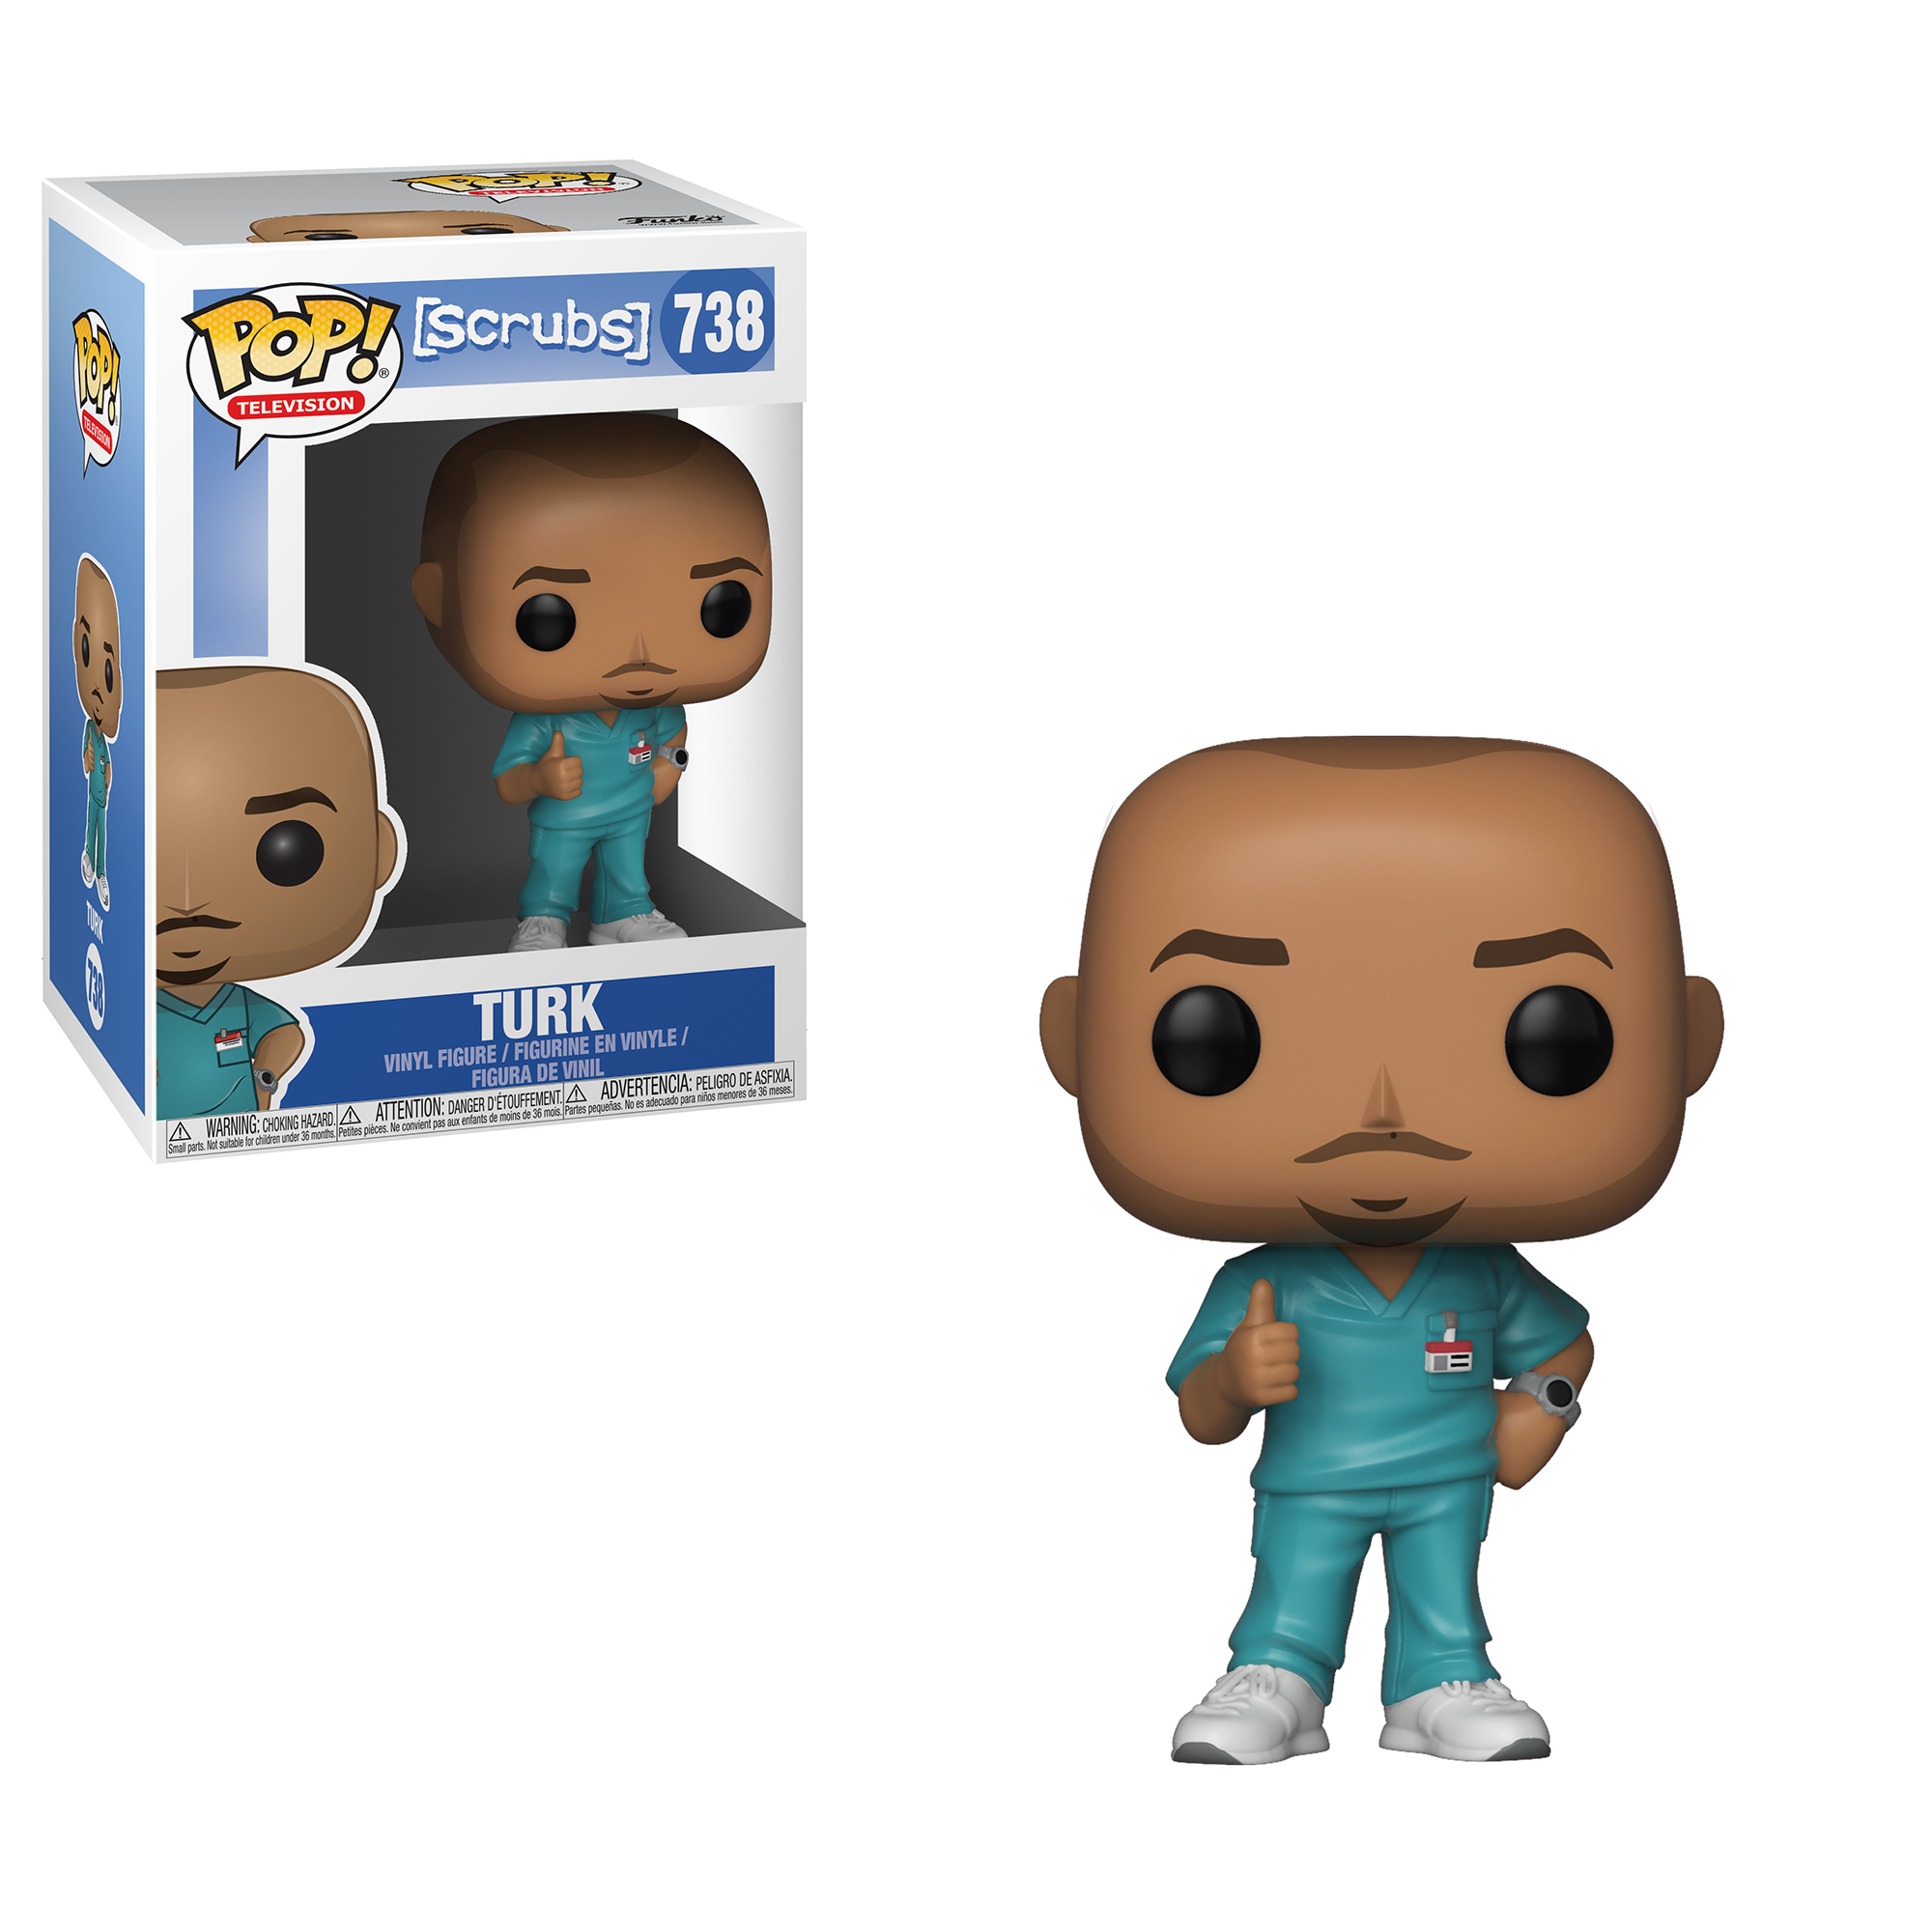 Funko POP! TV: Scrubs - Turk